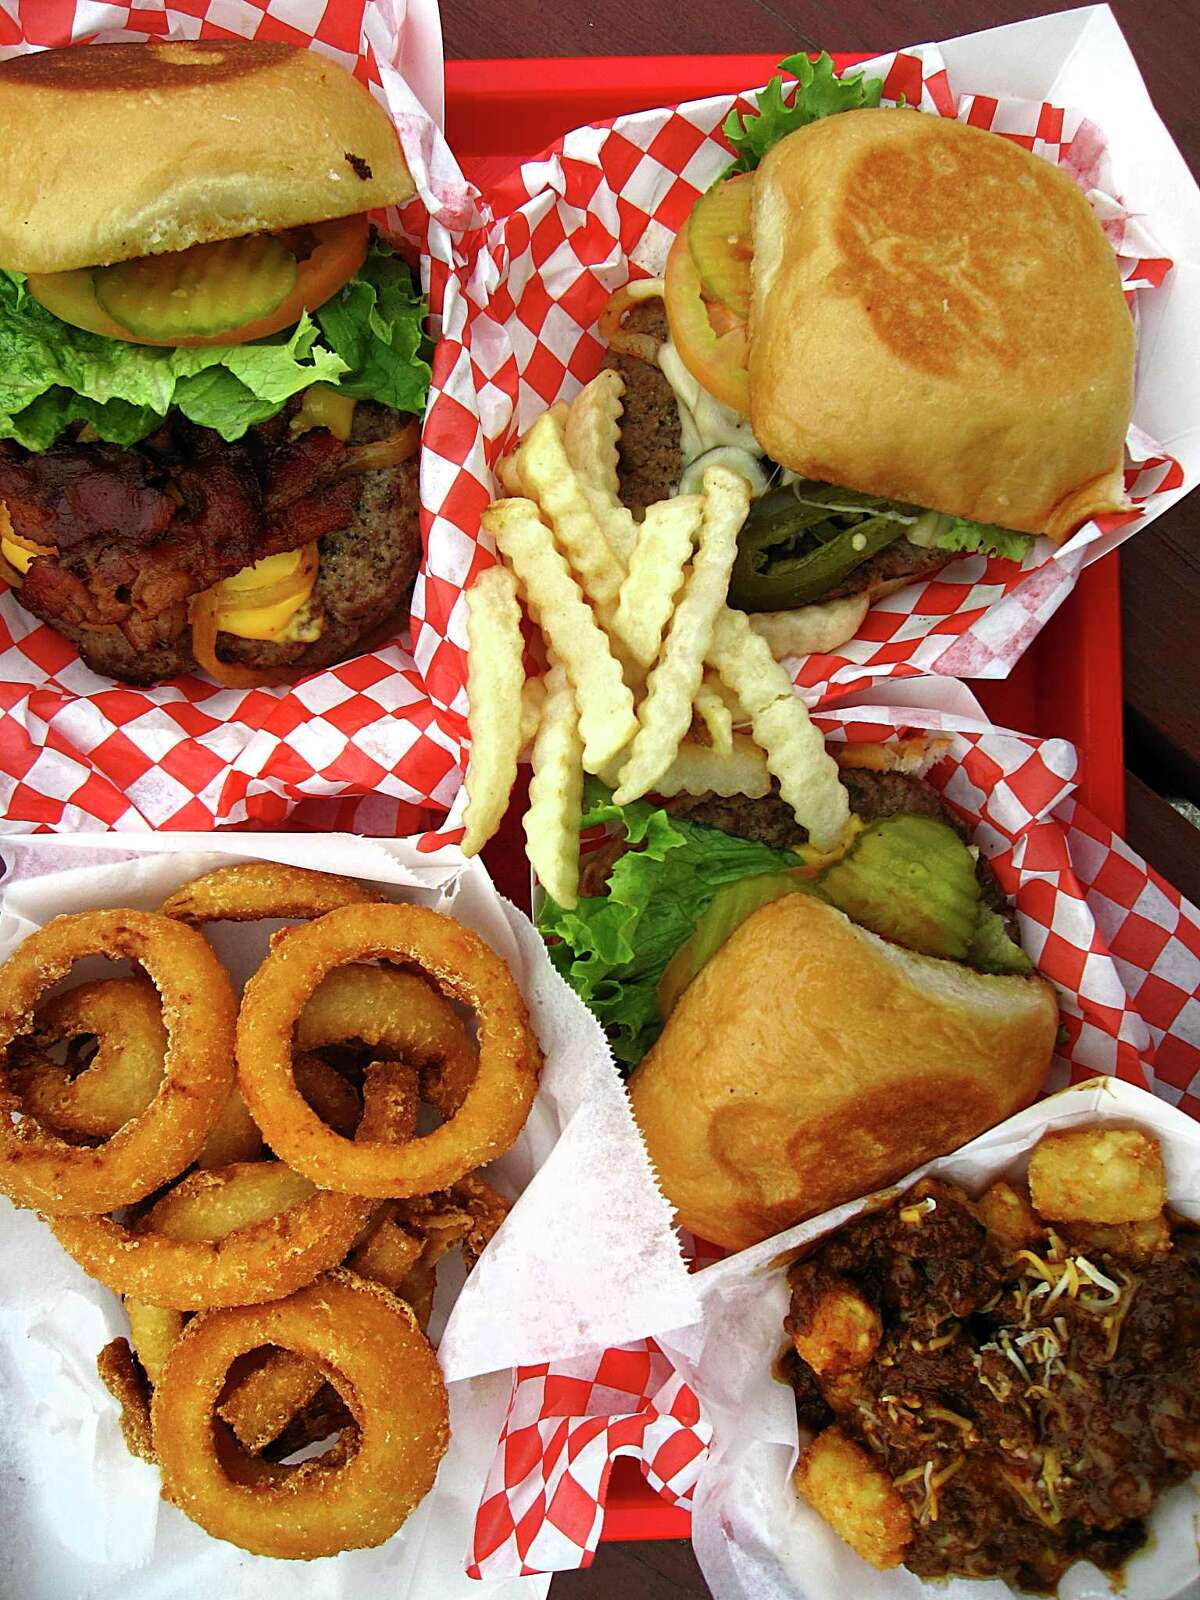 Burgers and sides at Papa's Burgers include onion rings, the triple-meat Jack Burton Burger, El Caliente Burger with jalapenos and pepperjck cheese, crinkle-cut fries, a basic Papa's Cheeseburger and chili-cheese tater tots.